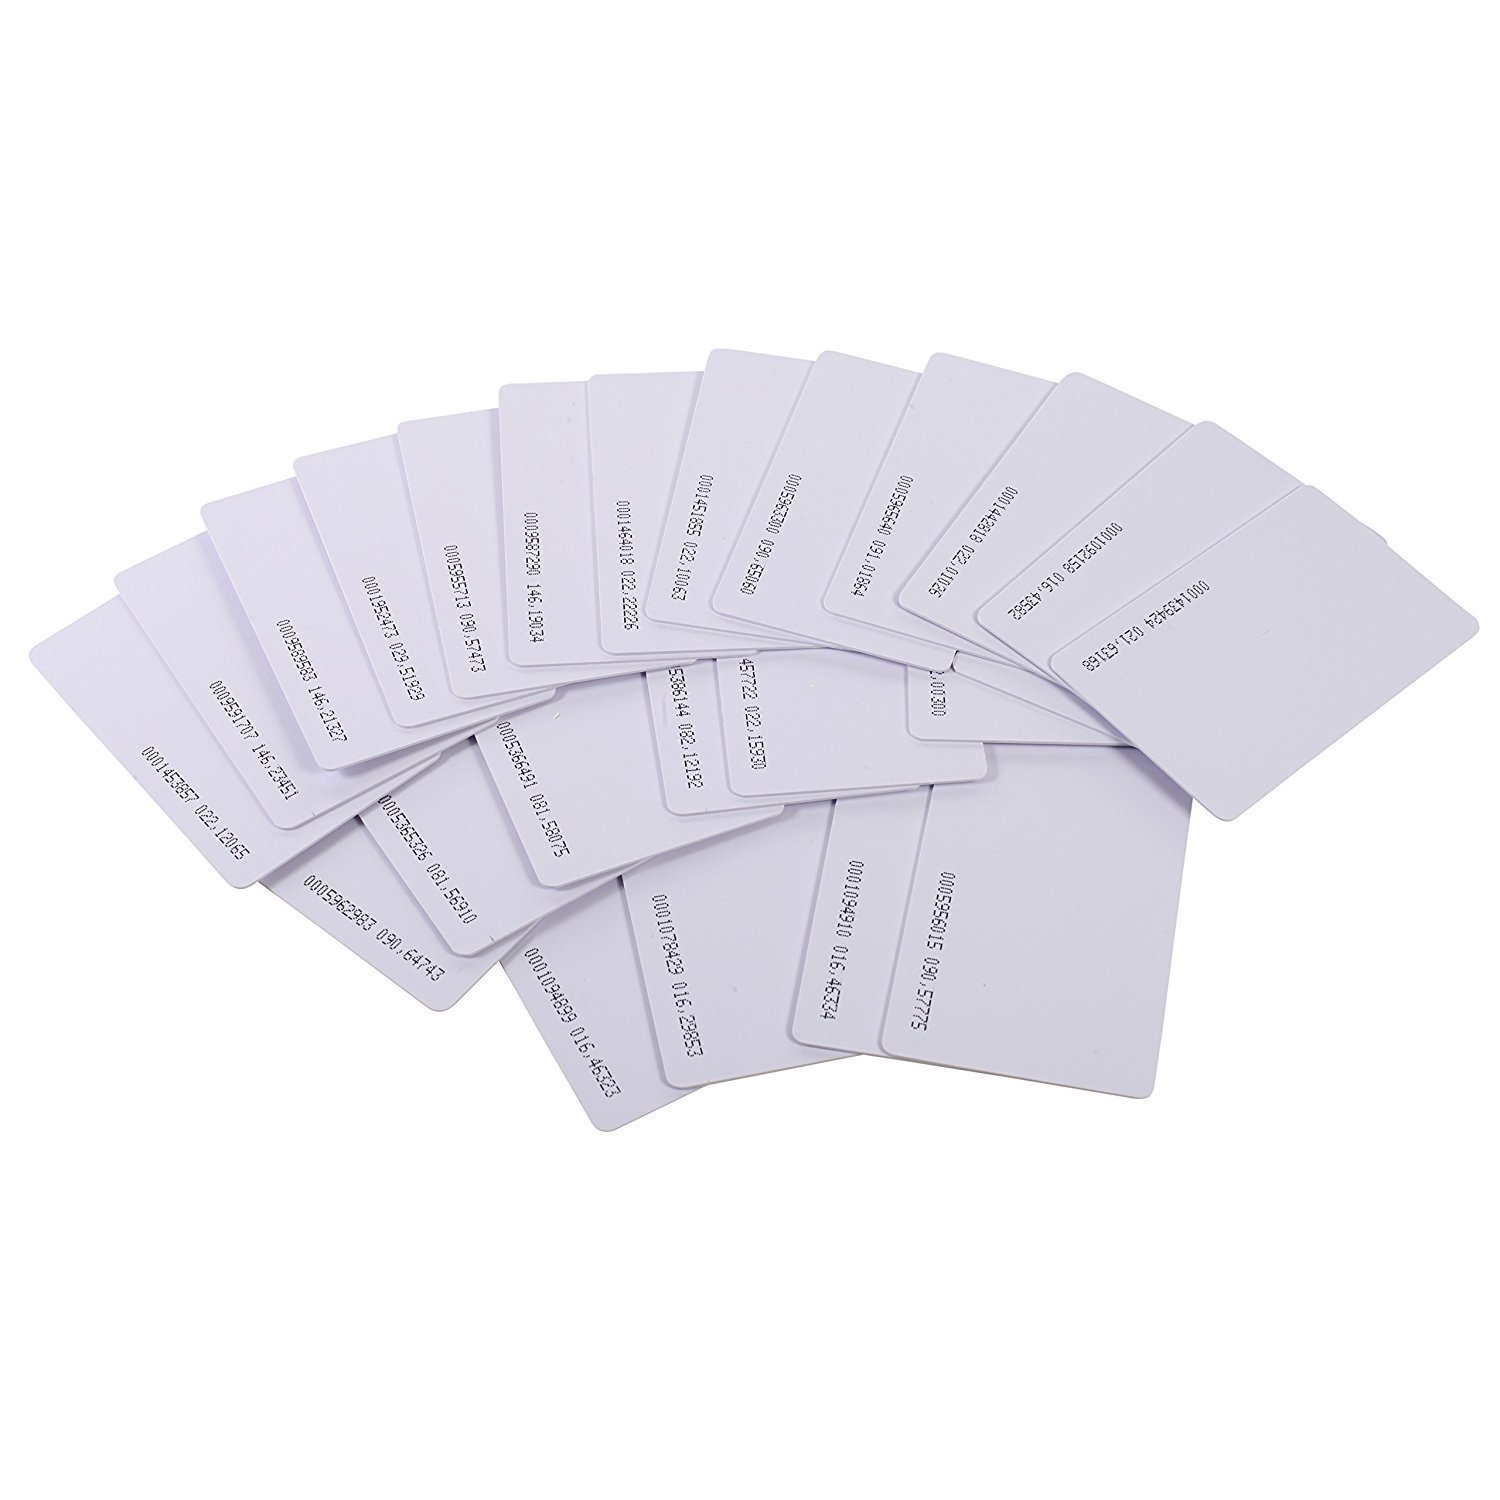 125khz em4100 door entry access blank white proximity rfid clamshell thick card thickness 1 9mm pack of 10 OBO HANDS Proximity 125KHz EM4100 RFID Proximity Smart Entry Access Employee ID Entry Card Thickness 0.8mm (Pack of 20)